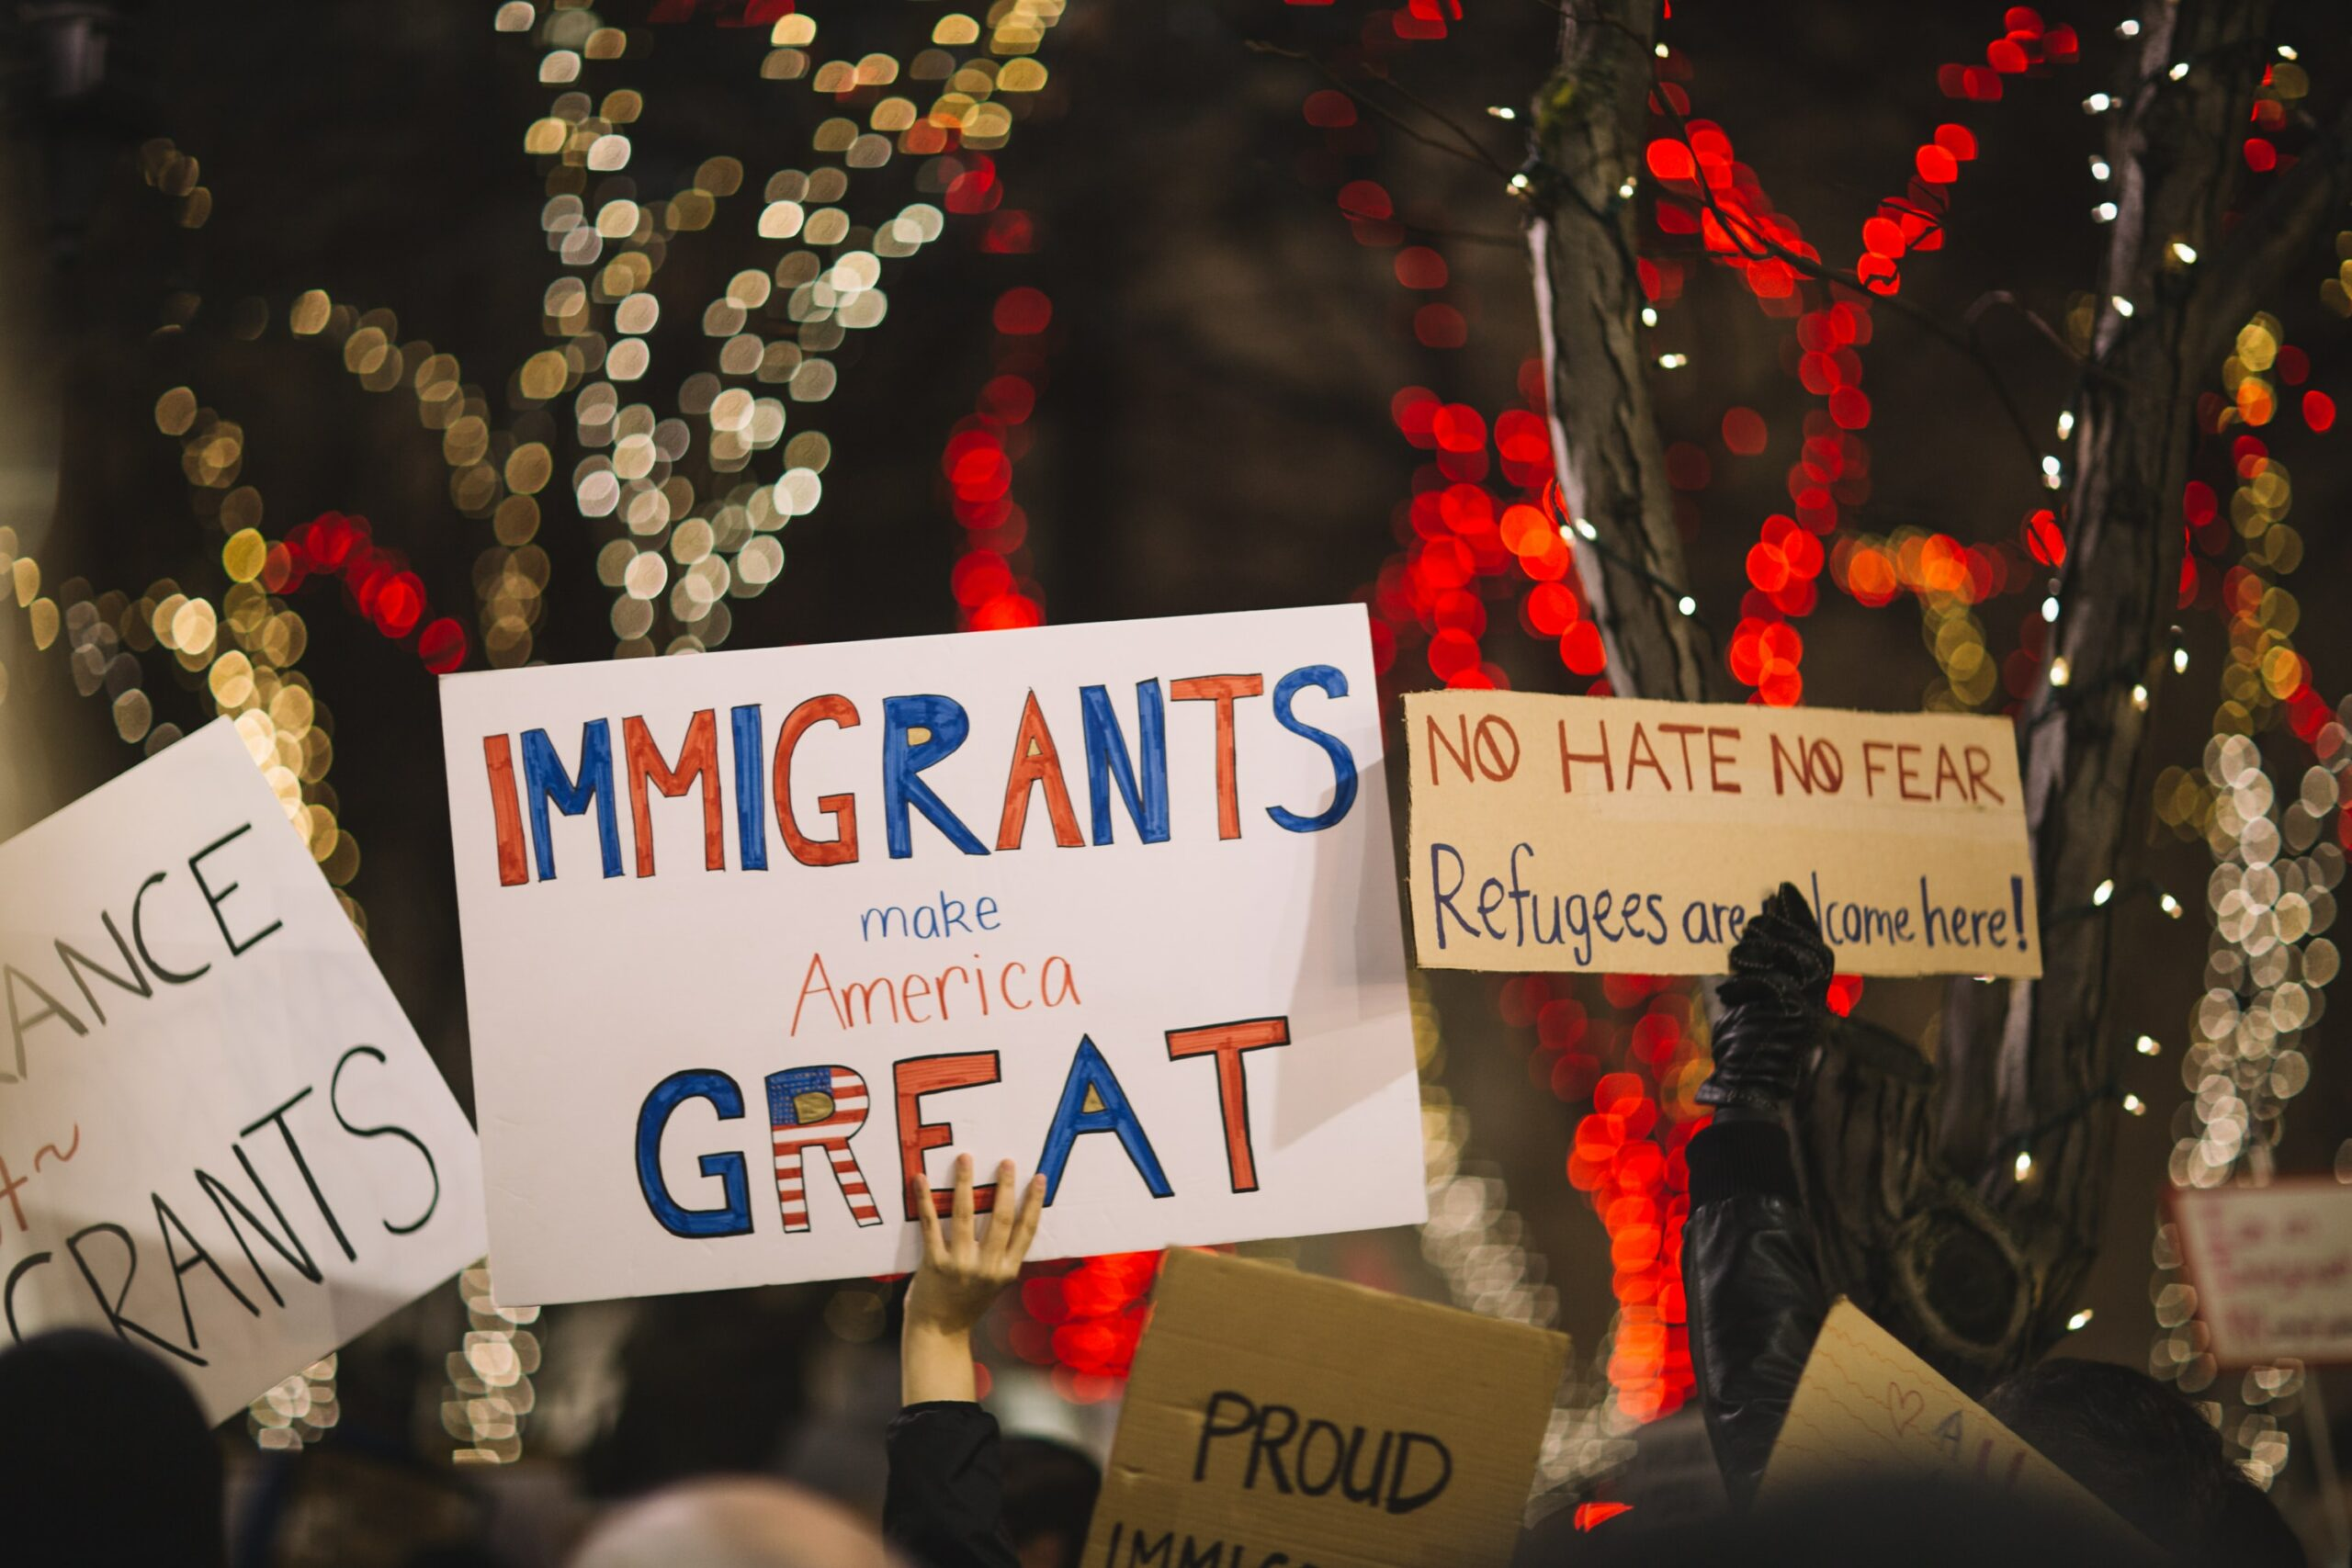 """Protestors with signs reading """"Immigrants make America Great"""""""